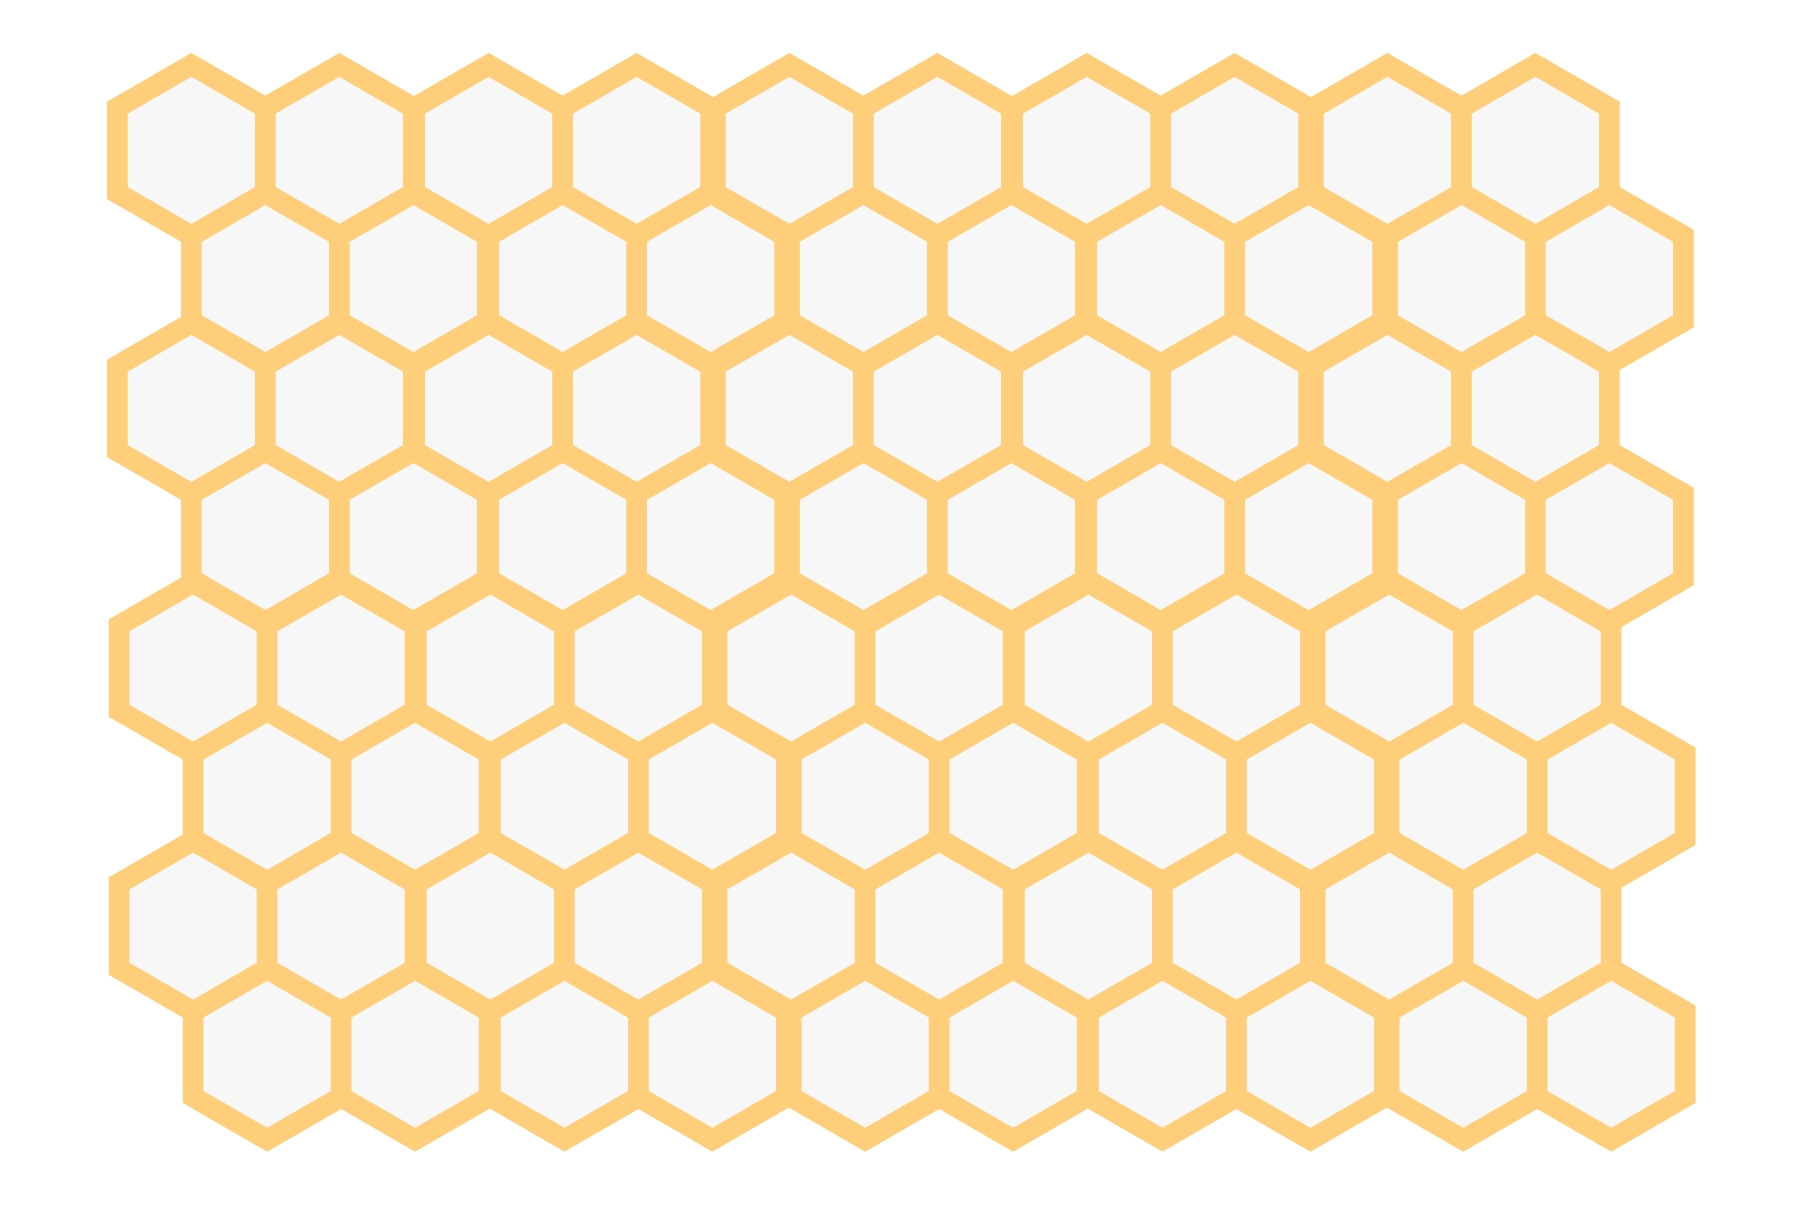 Value and use of the hexagon - Learning D3 js 5 Mapping